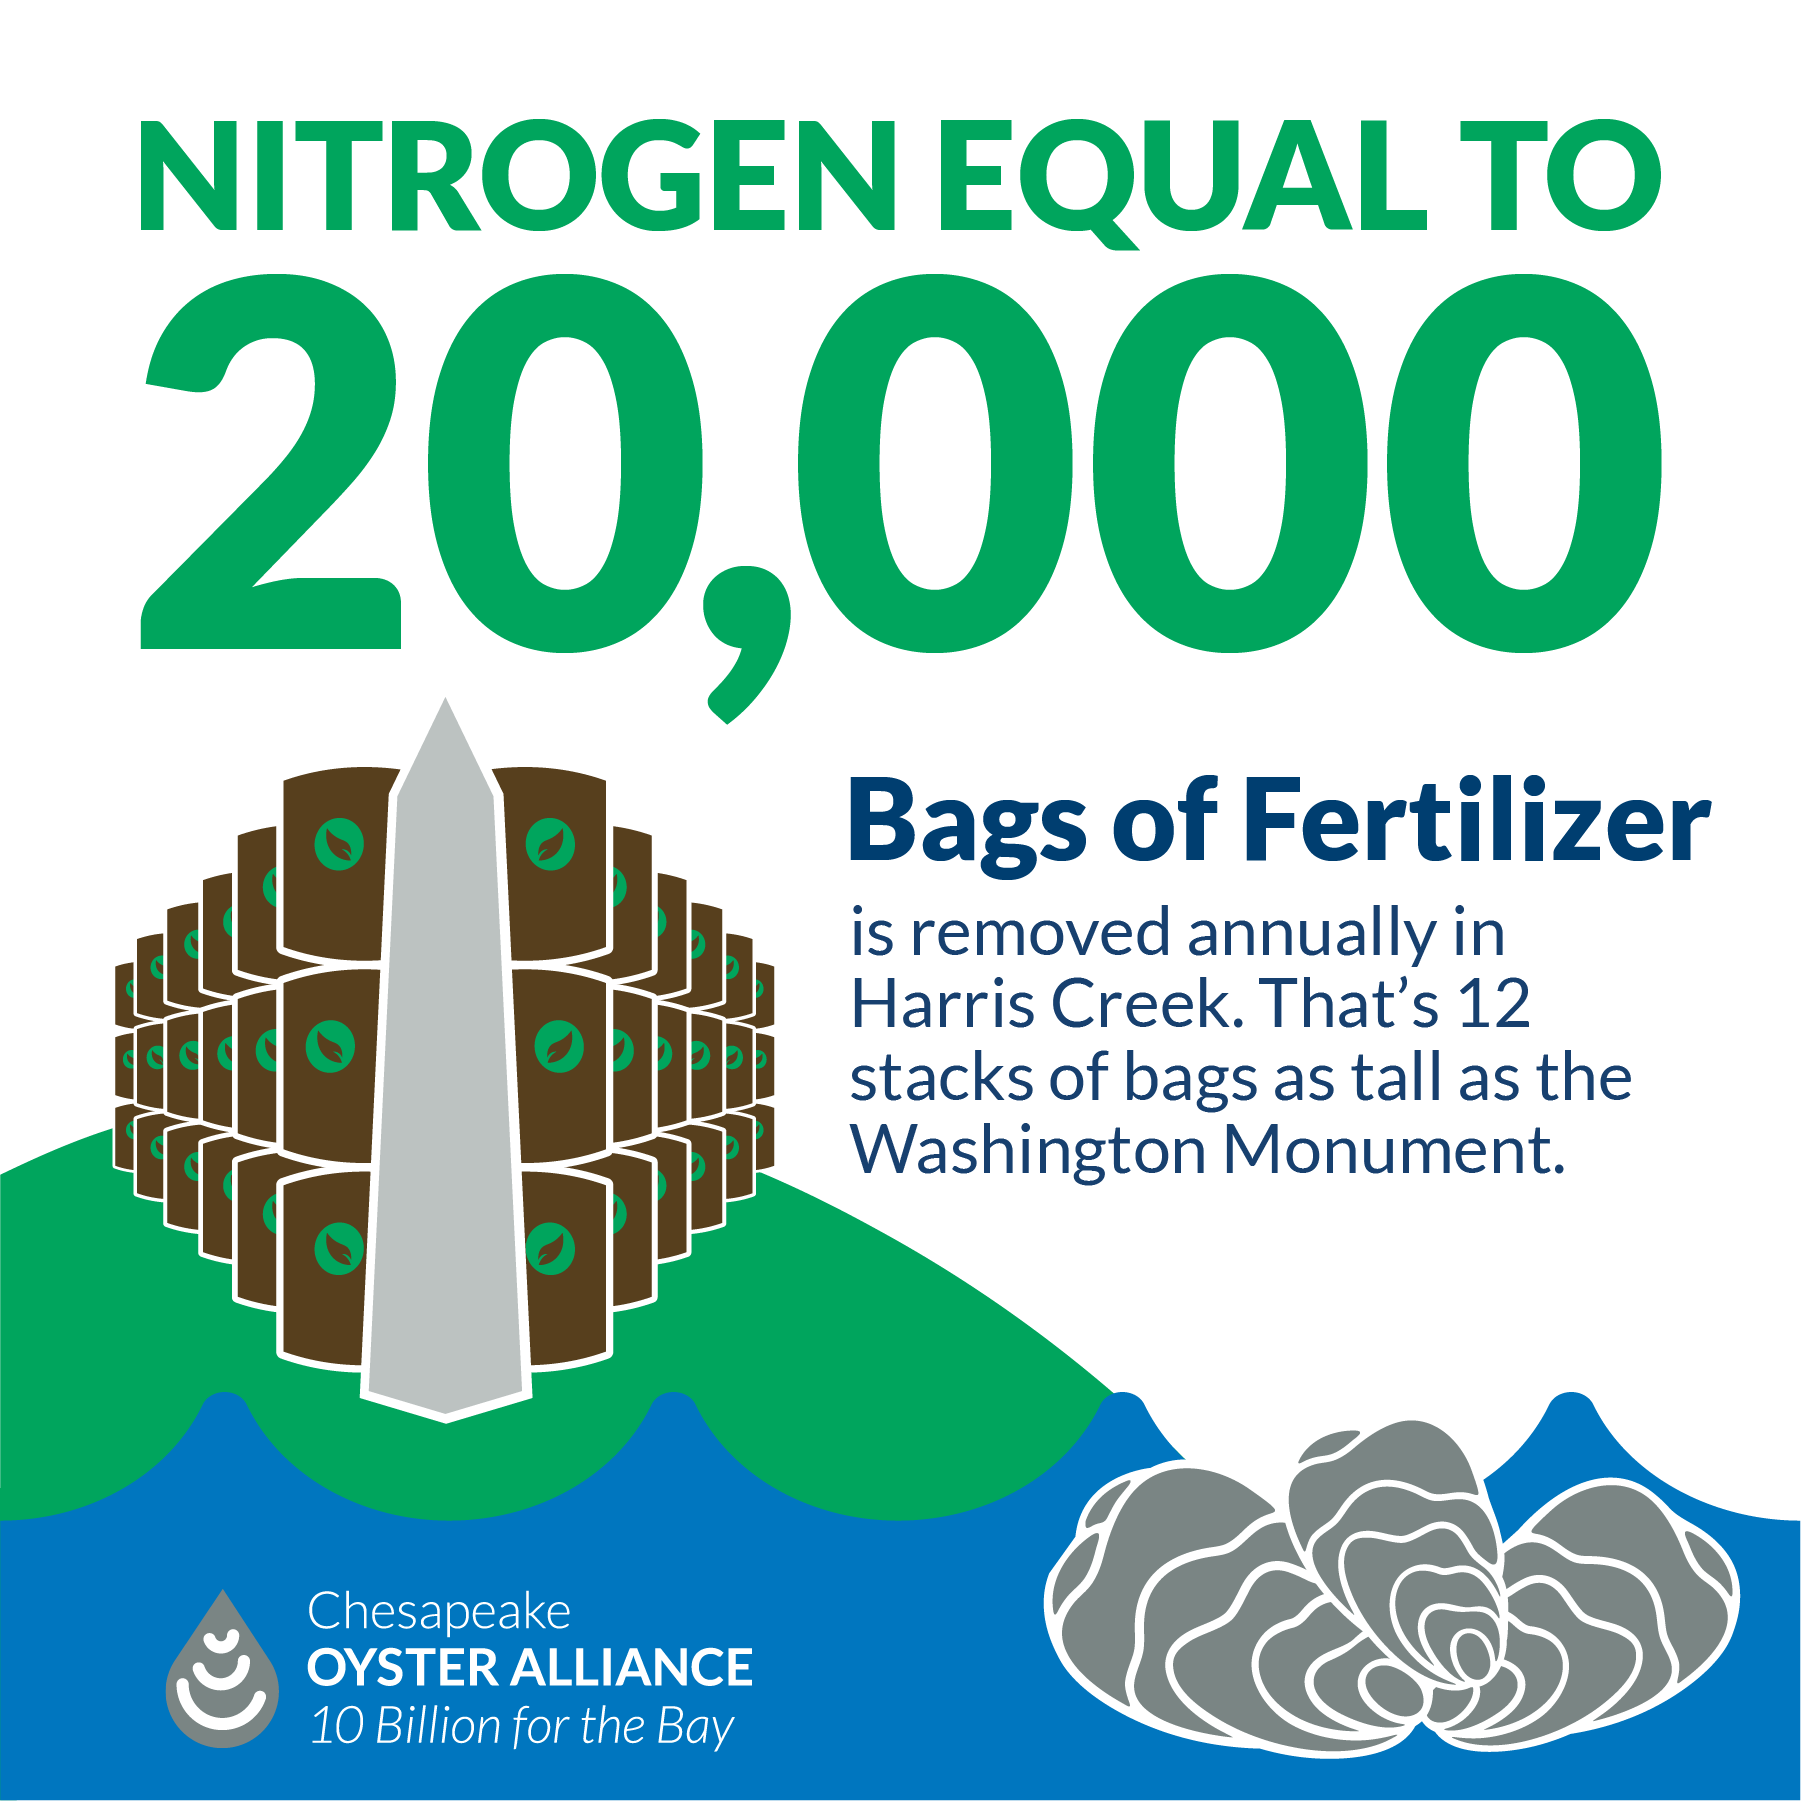 Nitrogen equal to 20,000 bags of fertilizer is removed annually in Harris Creek. That's 12 stacks of bags as tall as the Washington Monument.